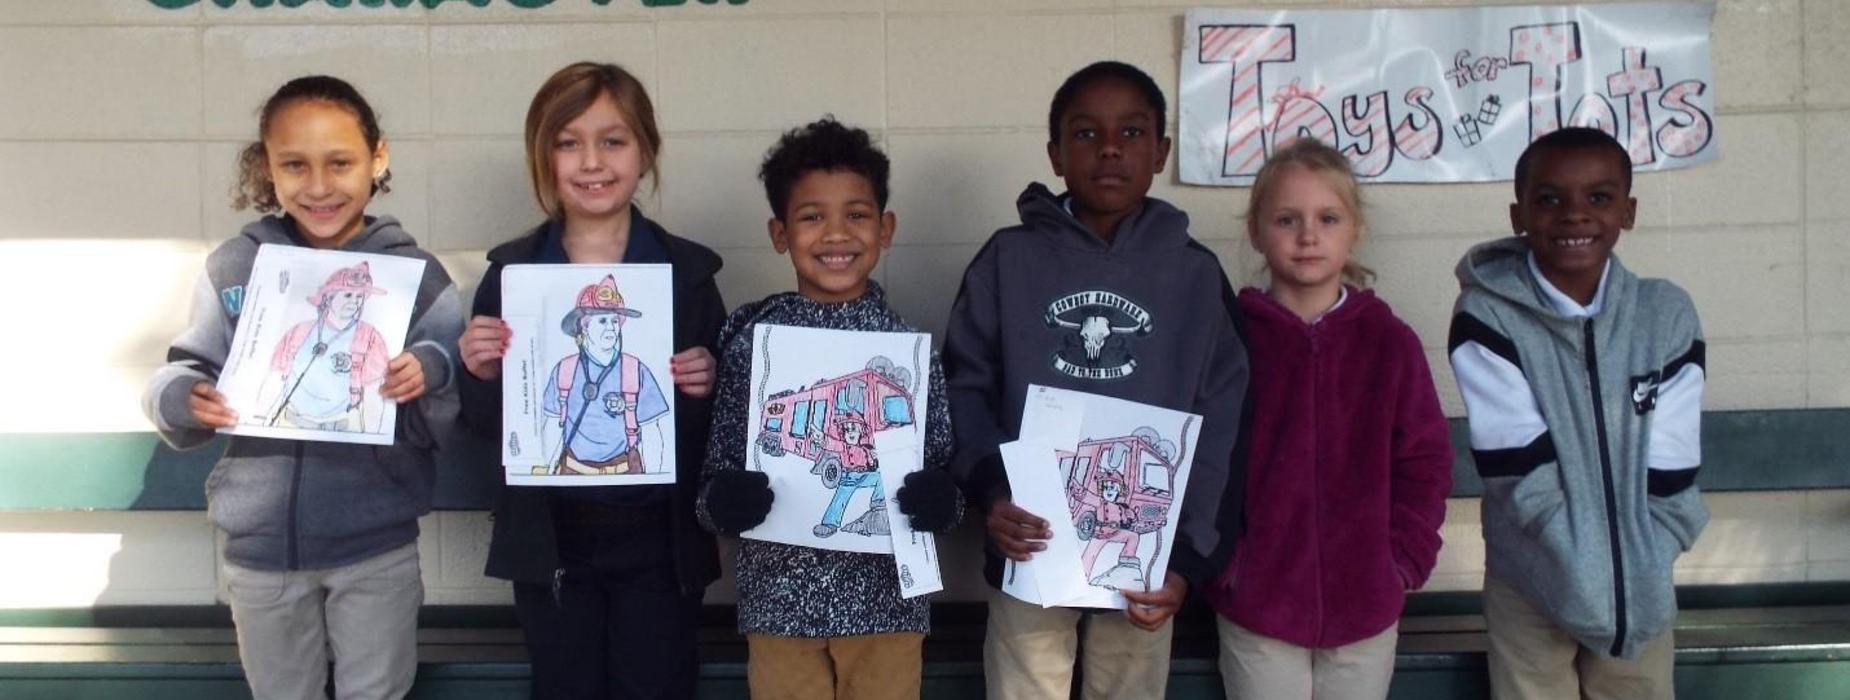 Eunice Fire Department recently held a coloring contest. Pictured are the 1st, 2nd, and 3rd grade winners. Congratulations to all of you!  L-to-R:  Ah'Reviona B, Sara L, Cameron F, Carson T, Madison A, & Corbin G